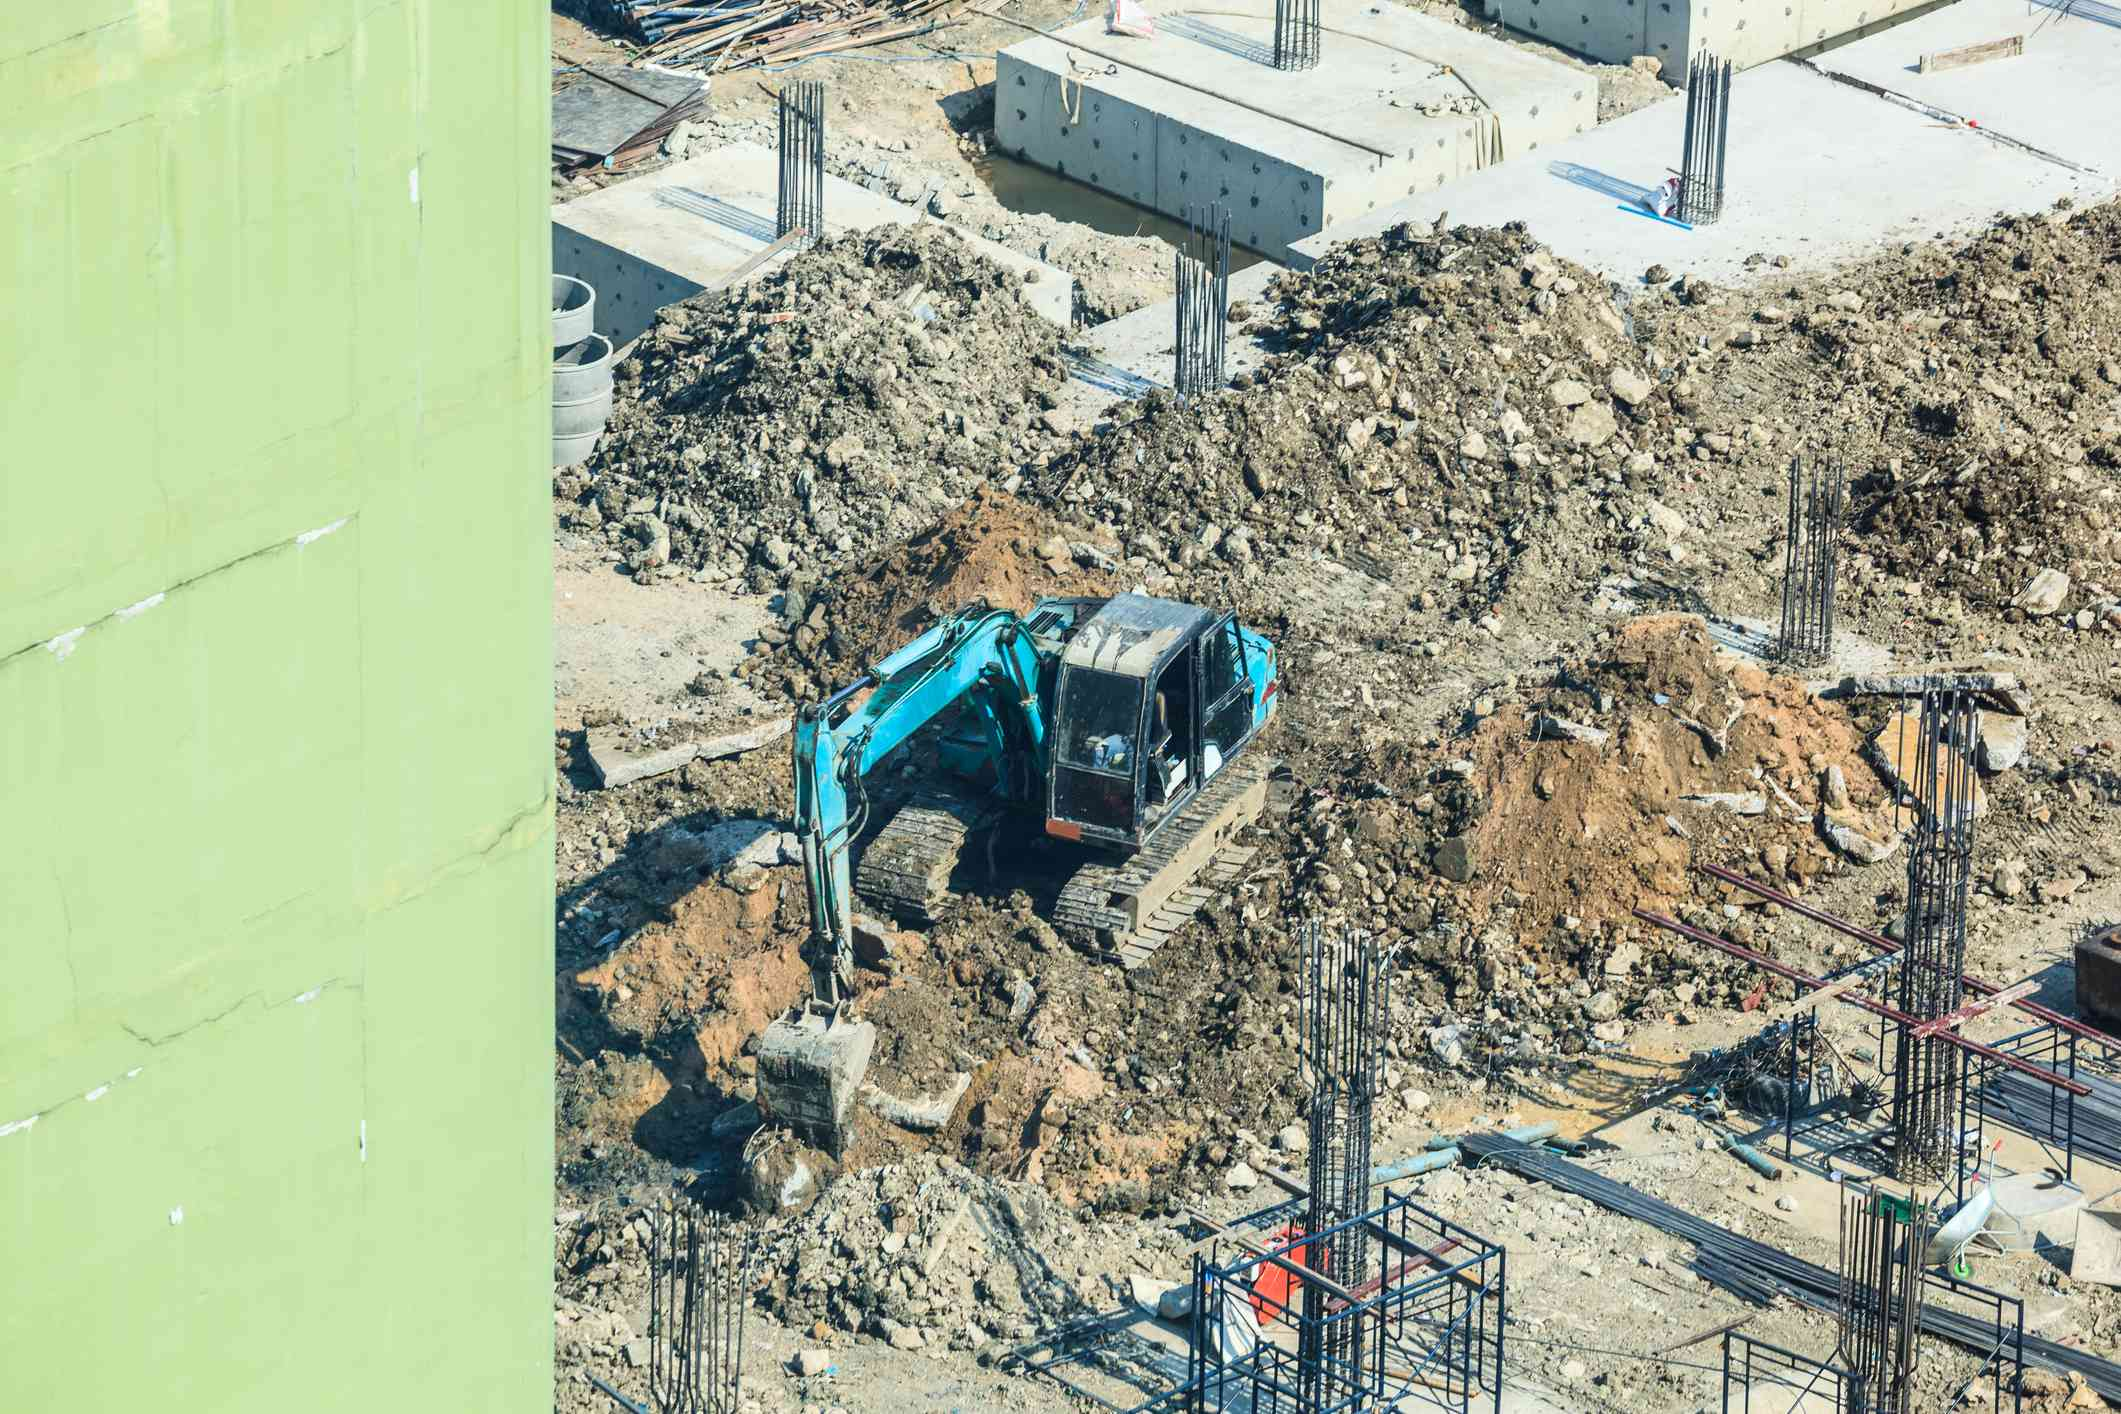 Construction Industry, Concrete building construction site. Concrete piles driven into the ground by excavator at foundation pit. Industrial Business, Working Place, Work and Labor, Economy concept.